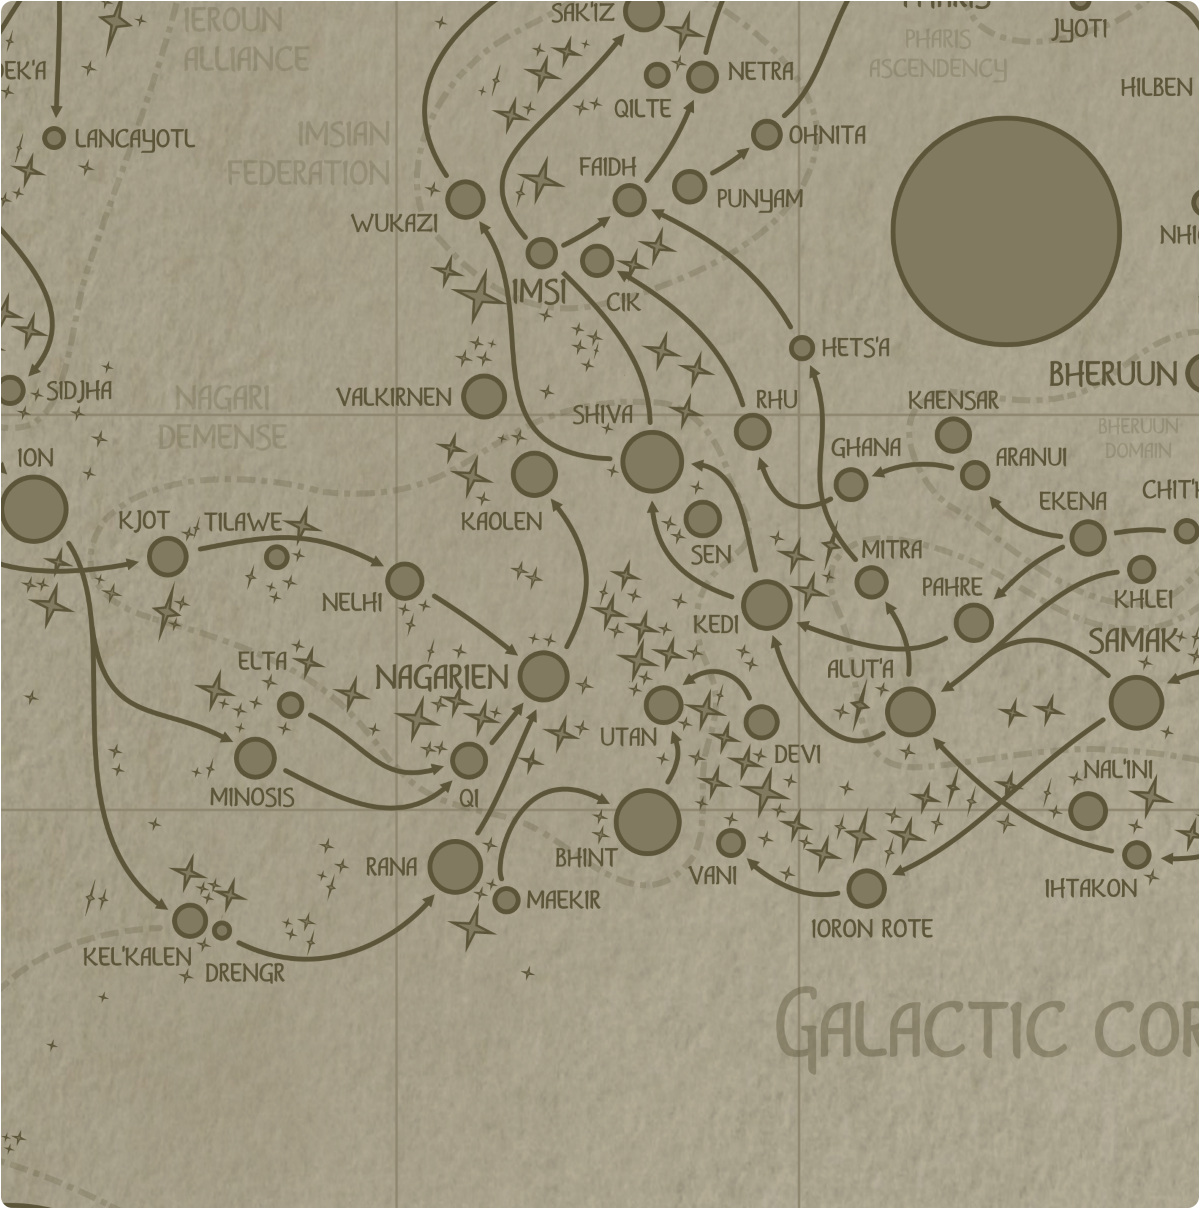 A paper map of galactic Sector J8